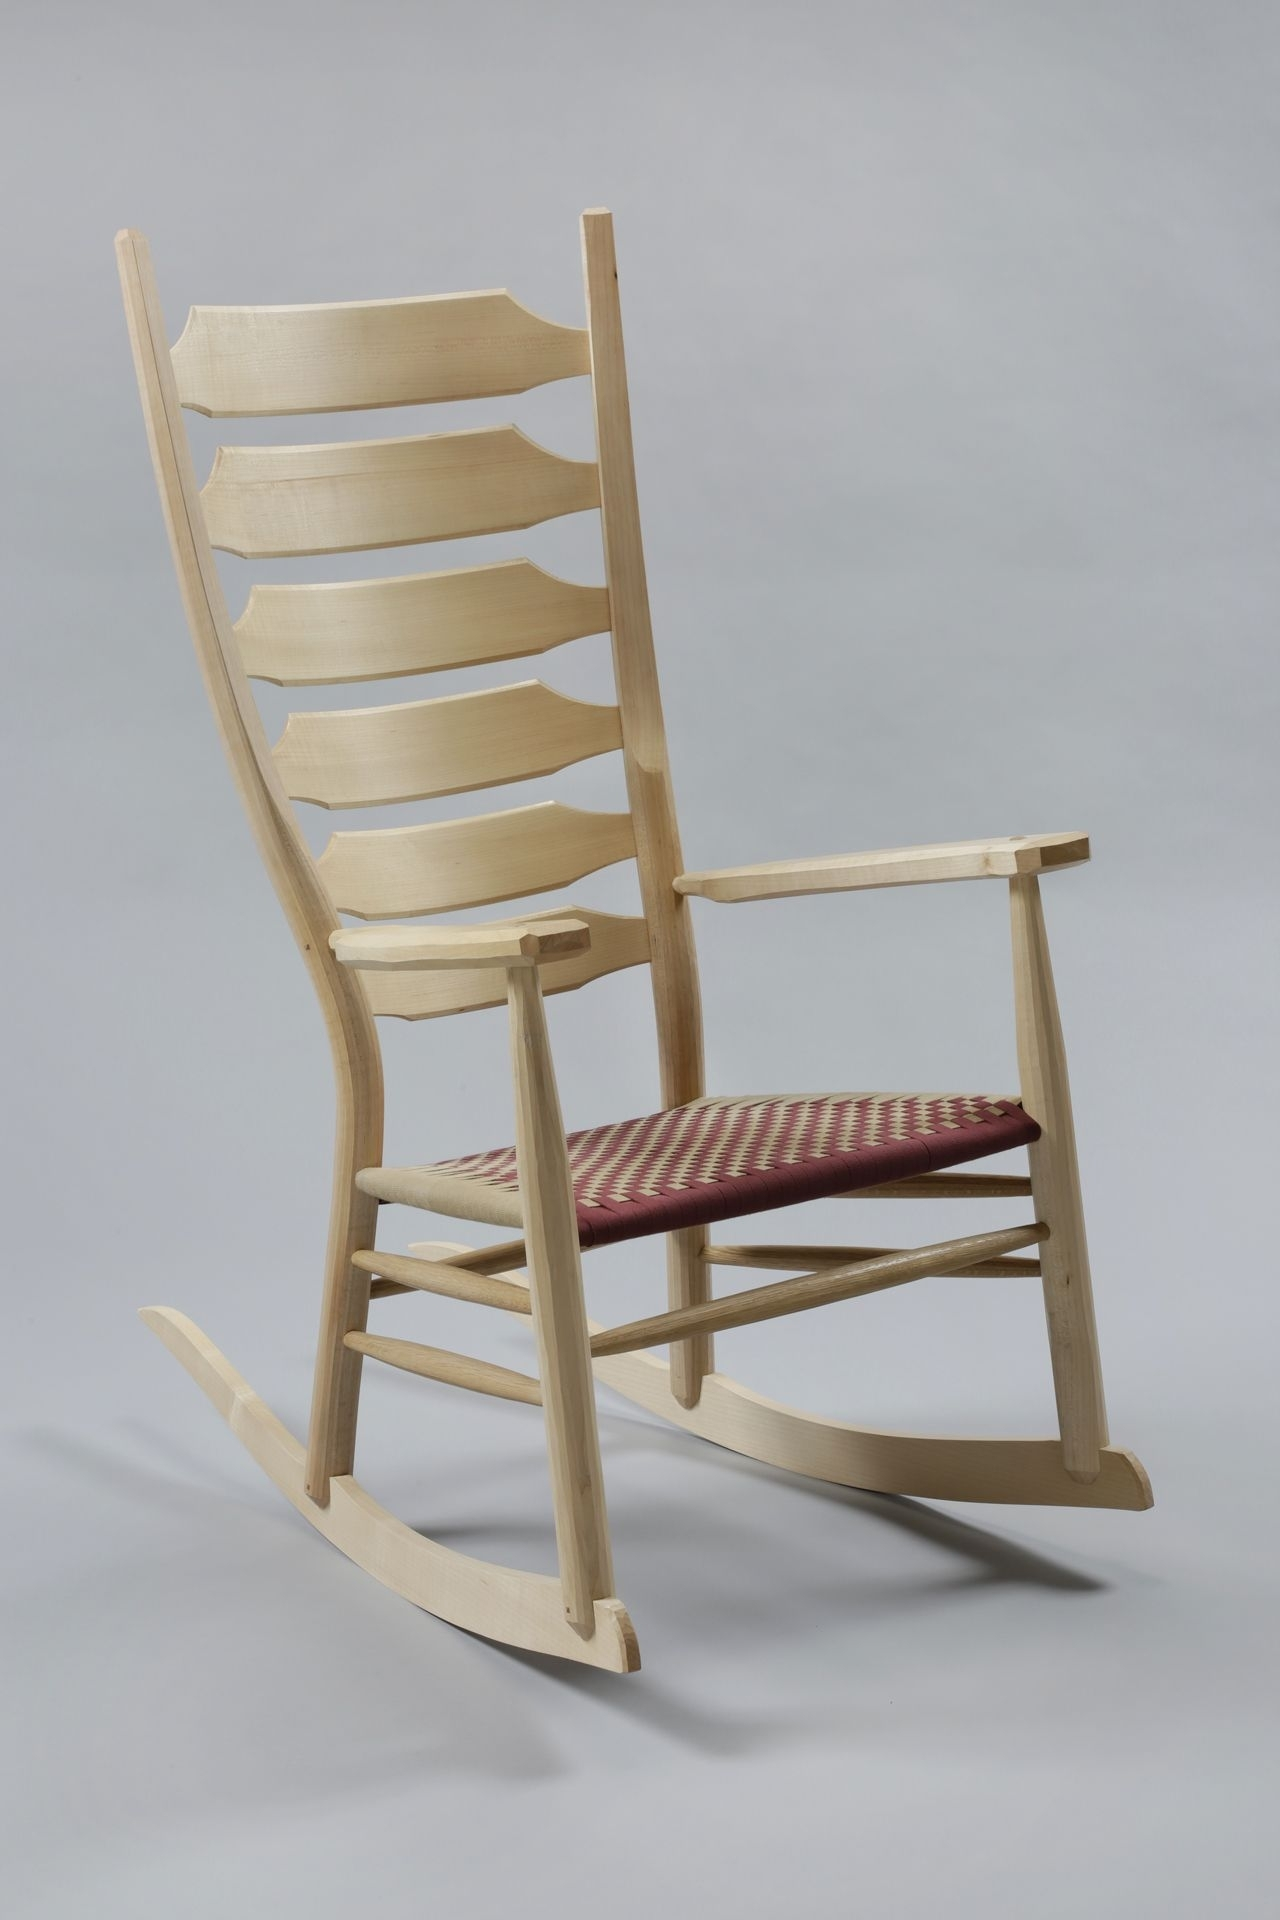 Our Greenwood Rocking Chair Is A Classic Post And Rung Chair Grown Within Rocking Chairs With Lumbar Support (View 4 of 15)